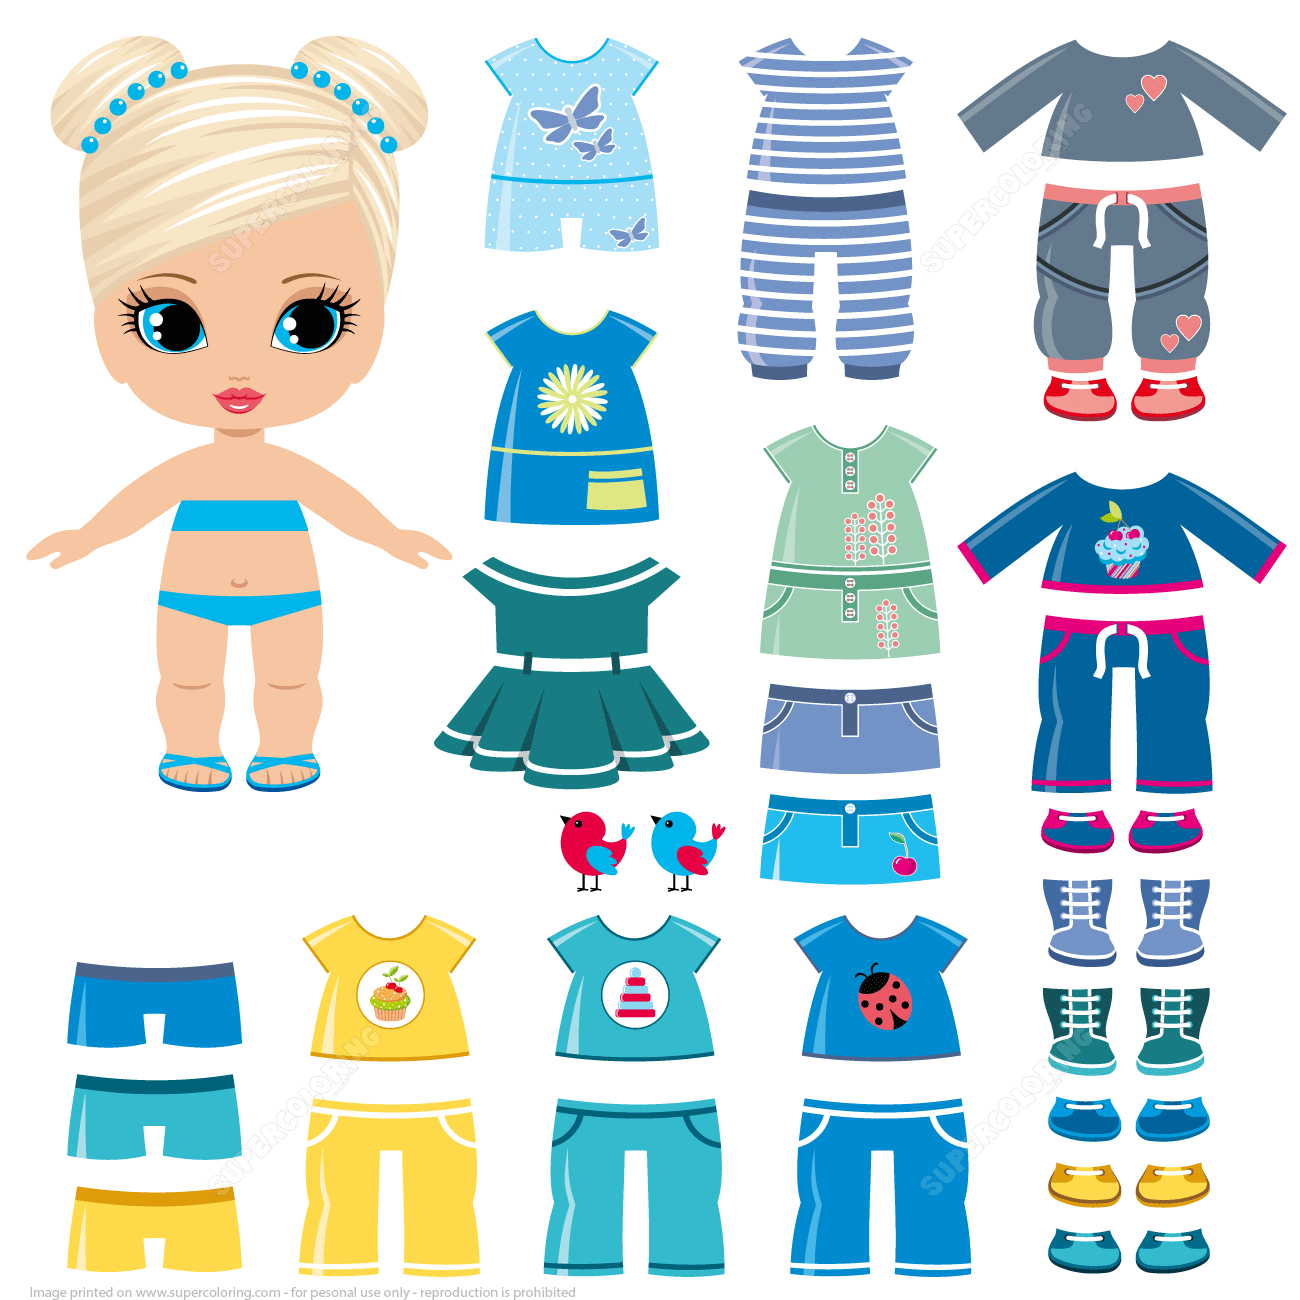 Dress Up Paper Dolls | Free Printable Papercraft Templates - Free Printable Dress Up Paper Dolls